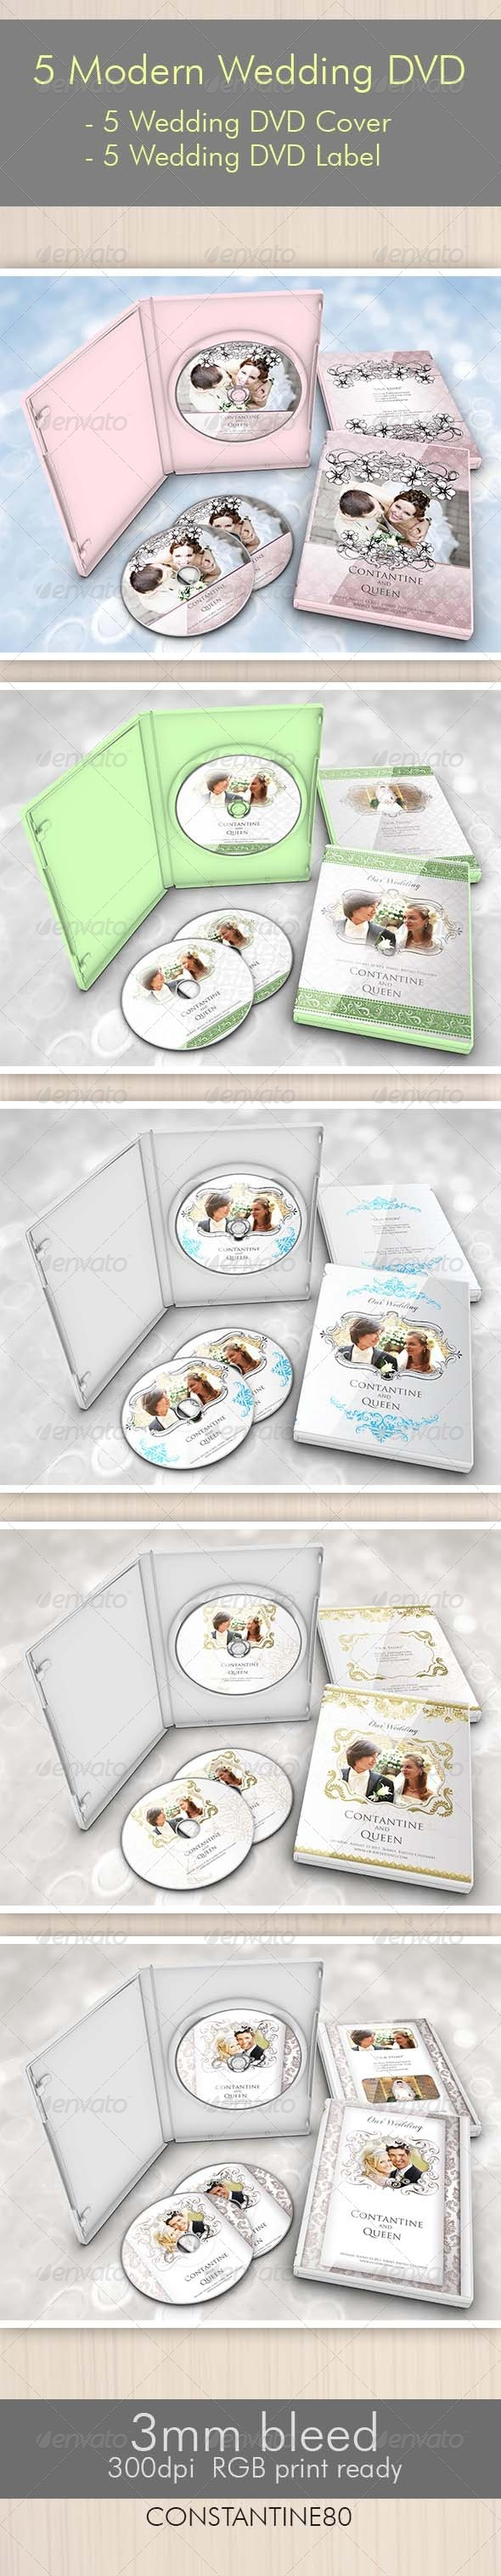 5 Items Modern Wedding DVD - CD & DVD artwork Print Templates